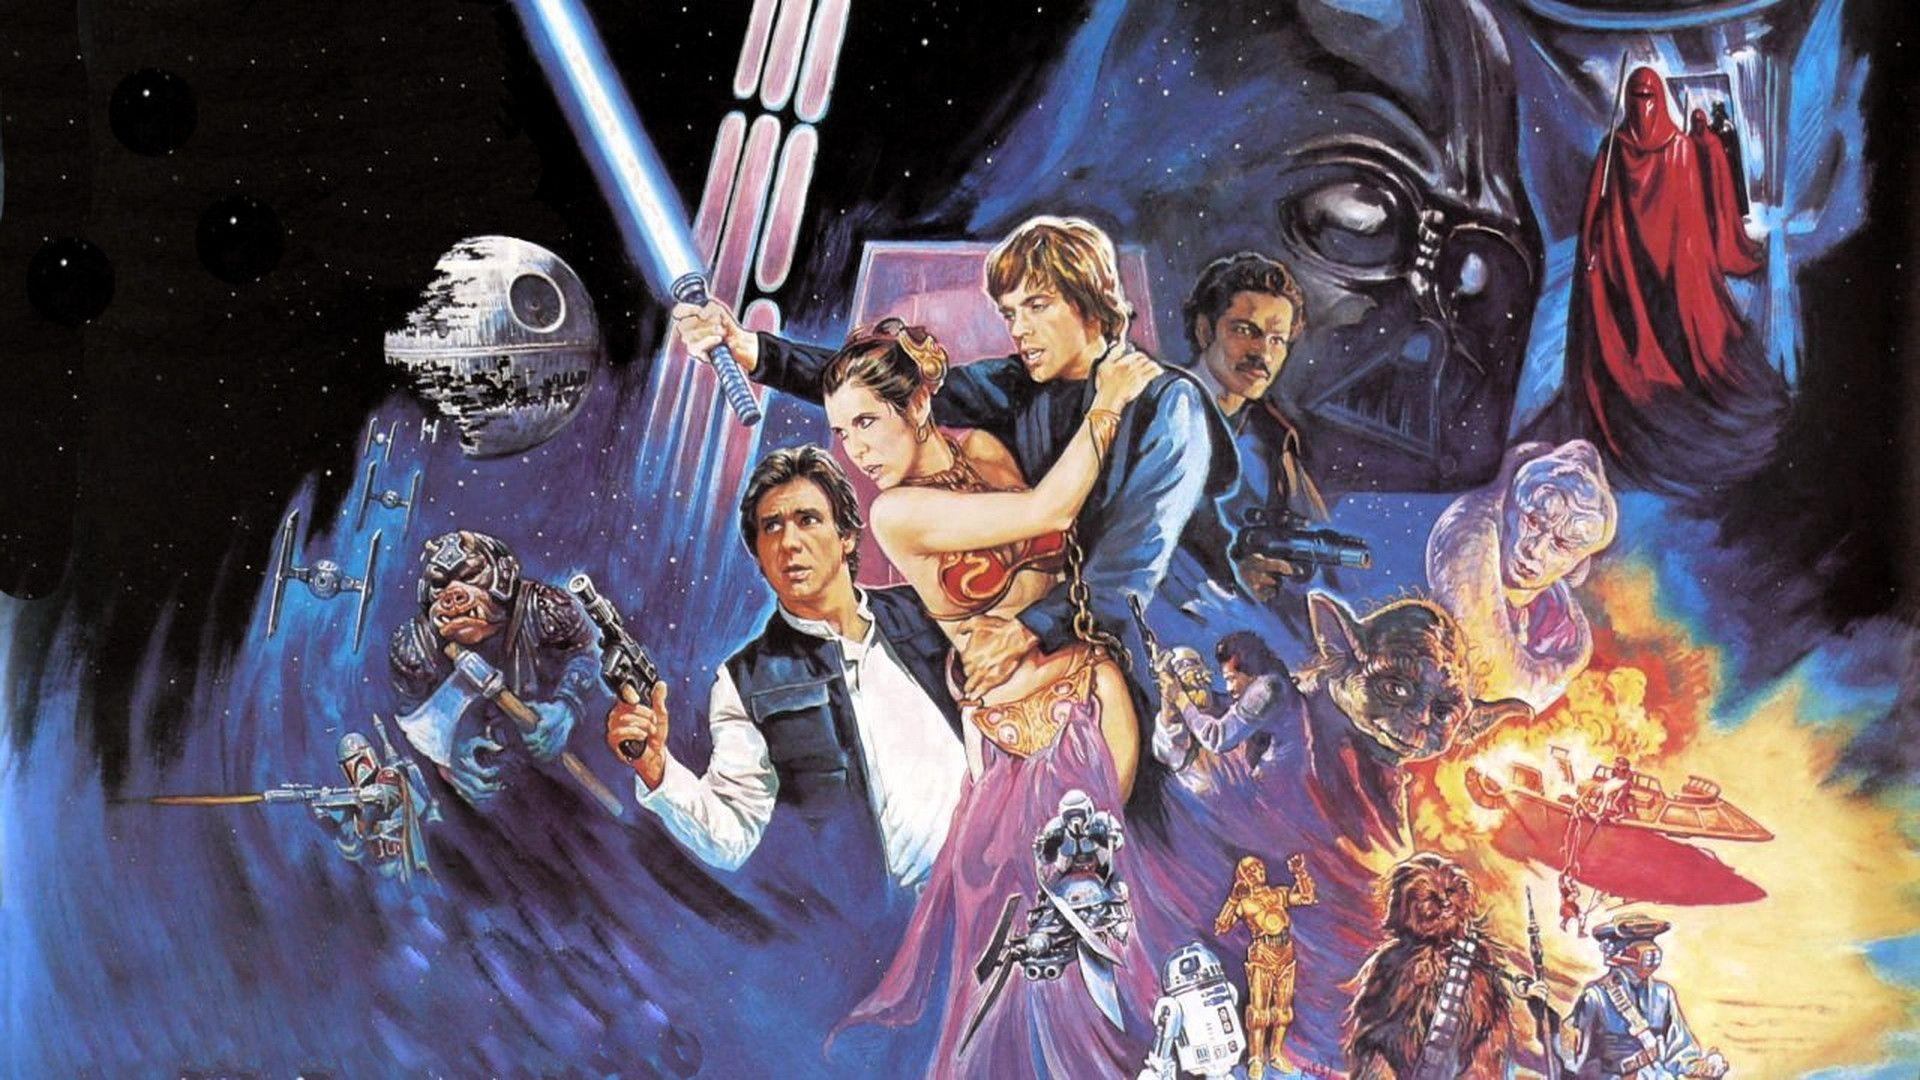 Movie Star Wars Episode VI: Return Of The Jedi Wallpaper 1920x1080 ...